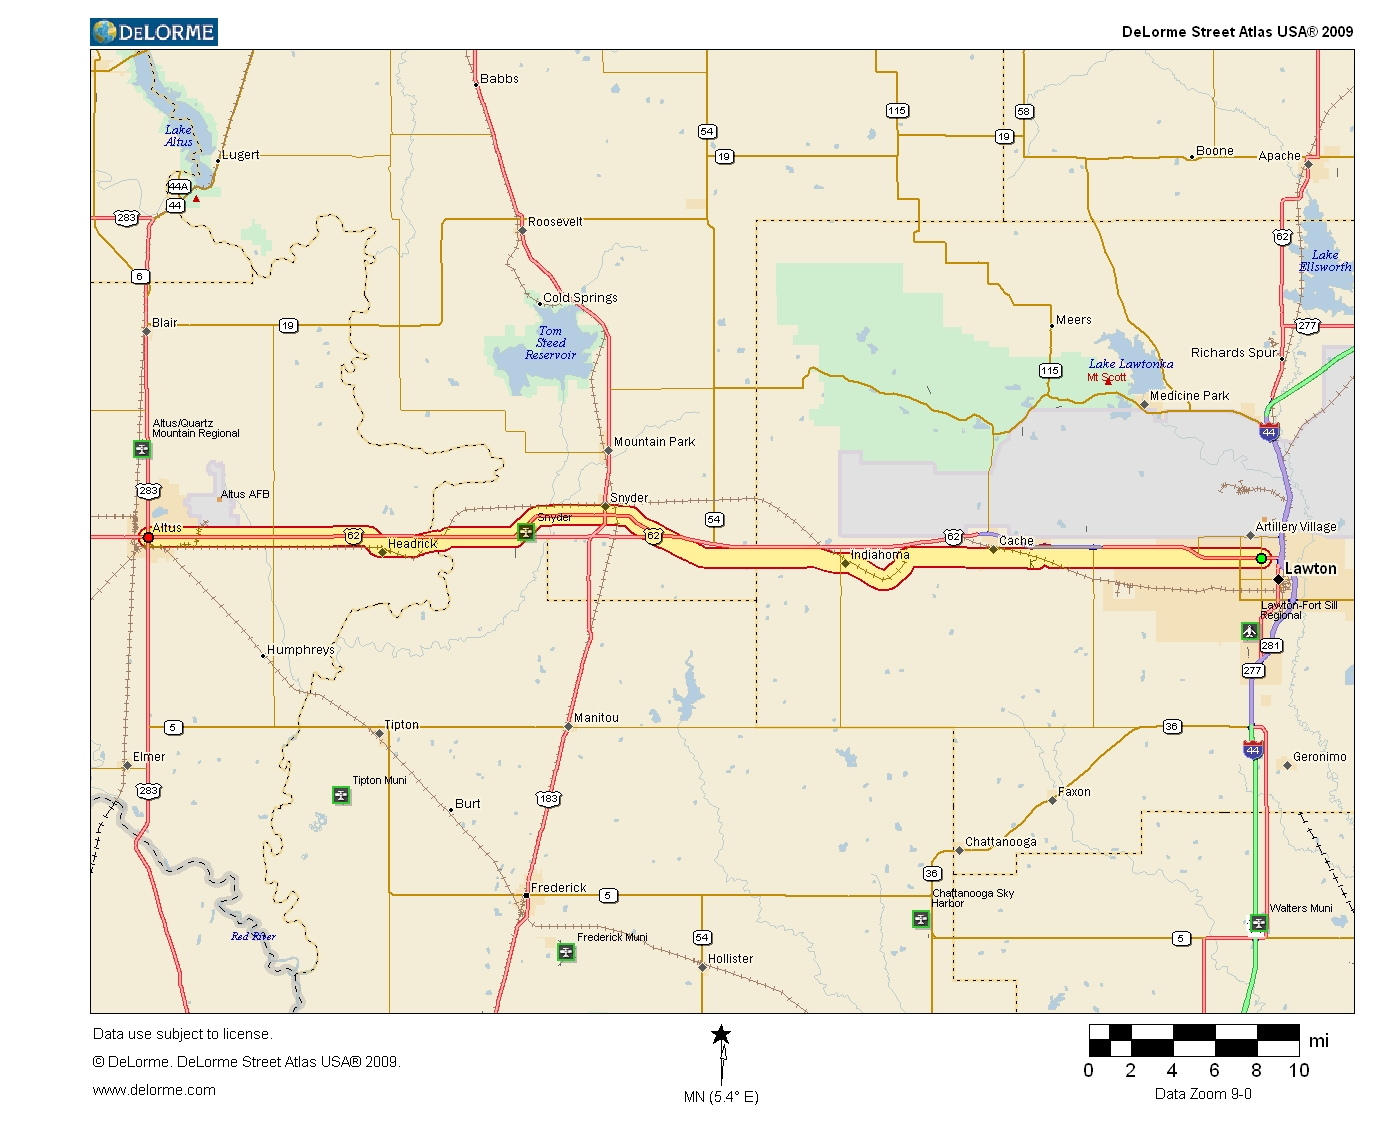 map of oklahoma panhandle with Us62law Alt on Texas Attractions Map furthermore Page1 additionally Us62law Alt besides Us Ngl Pipelines Expand besides Hcw07.